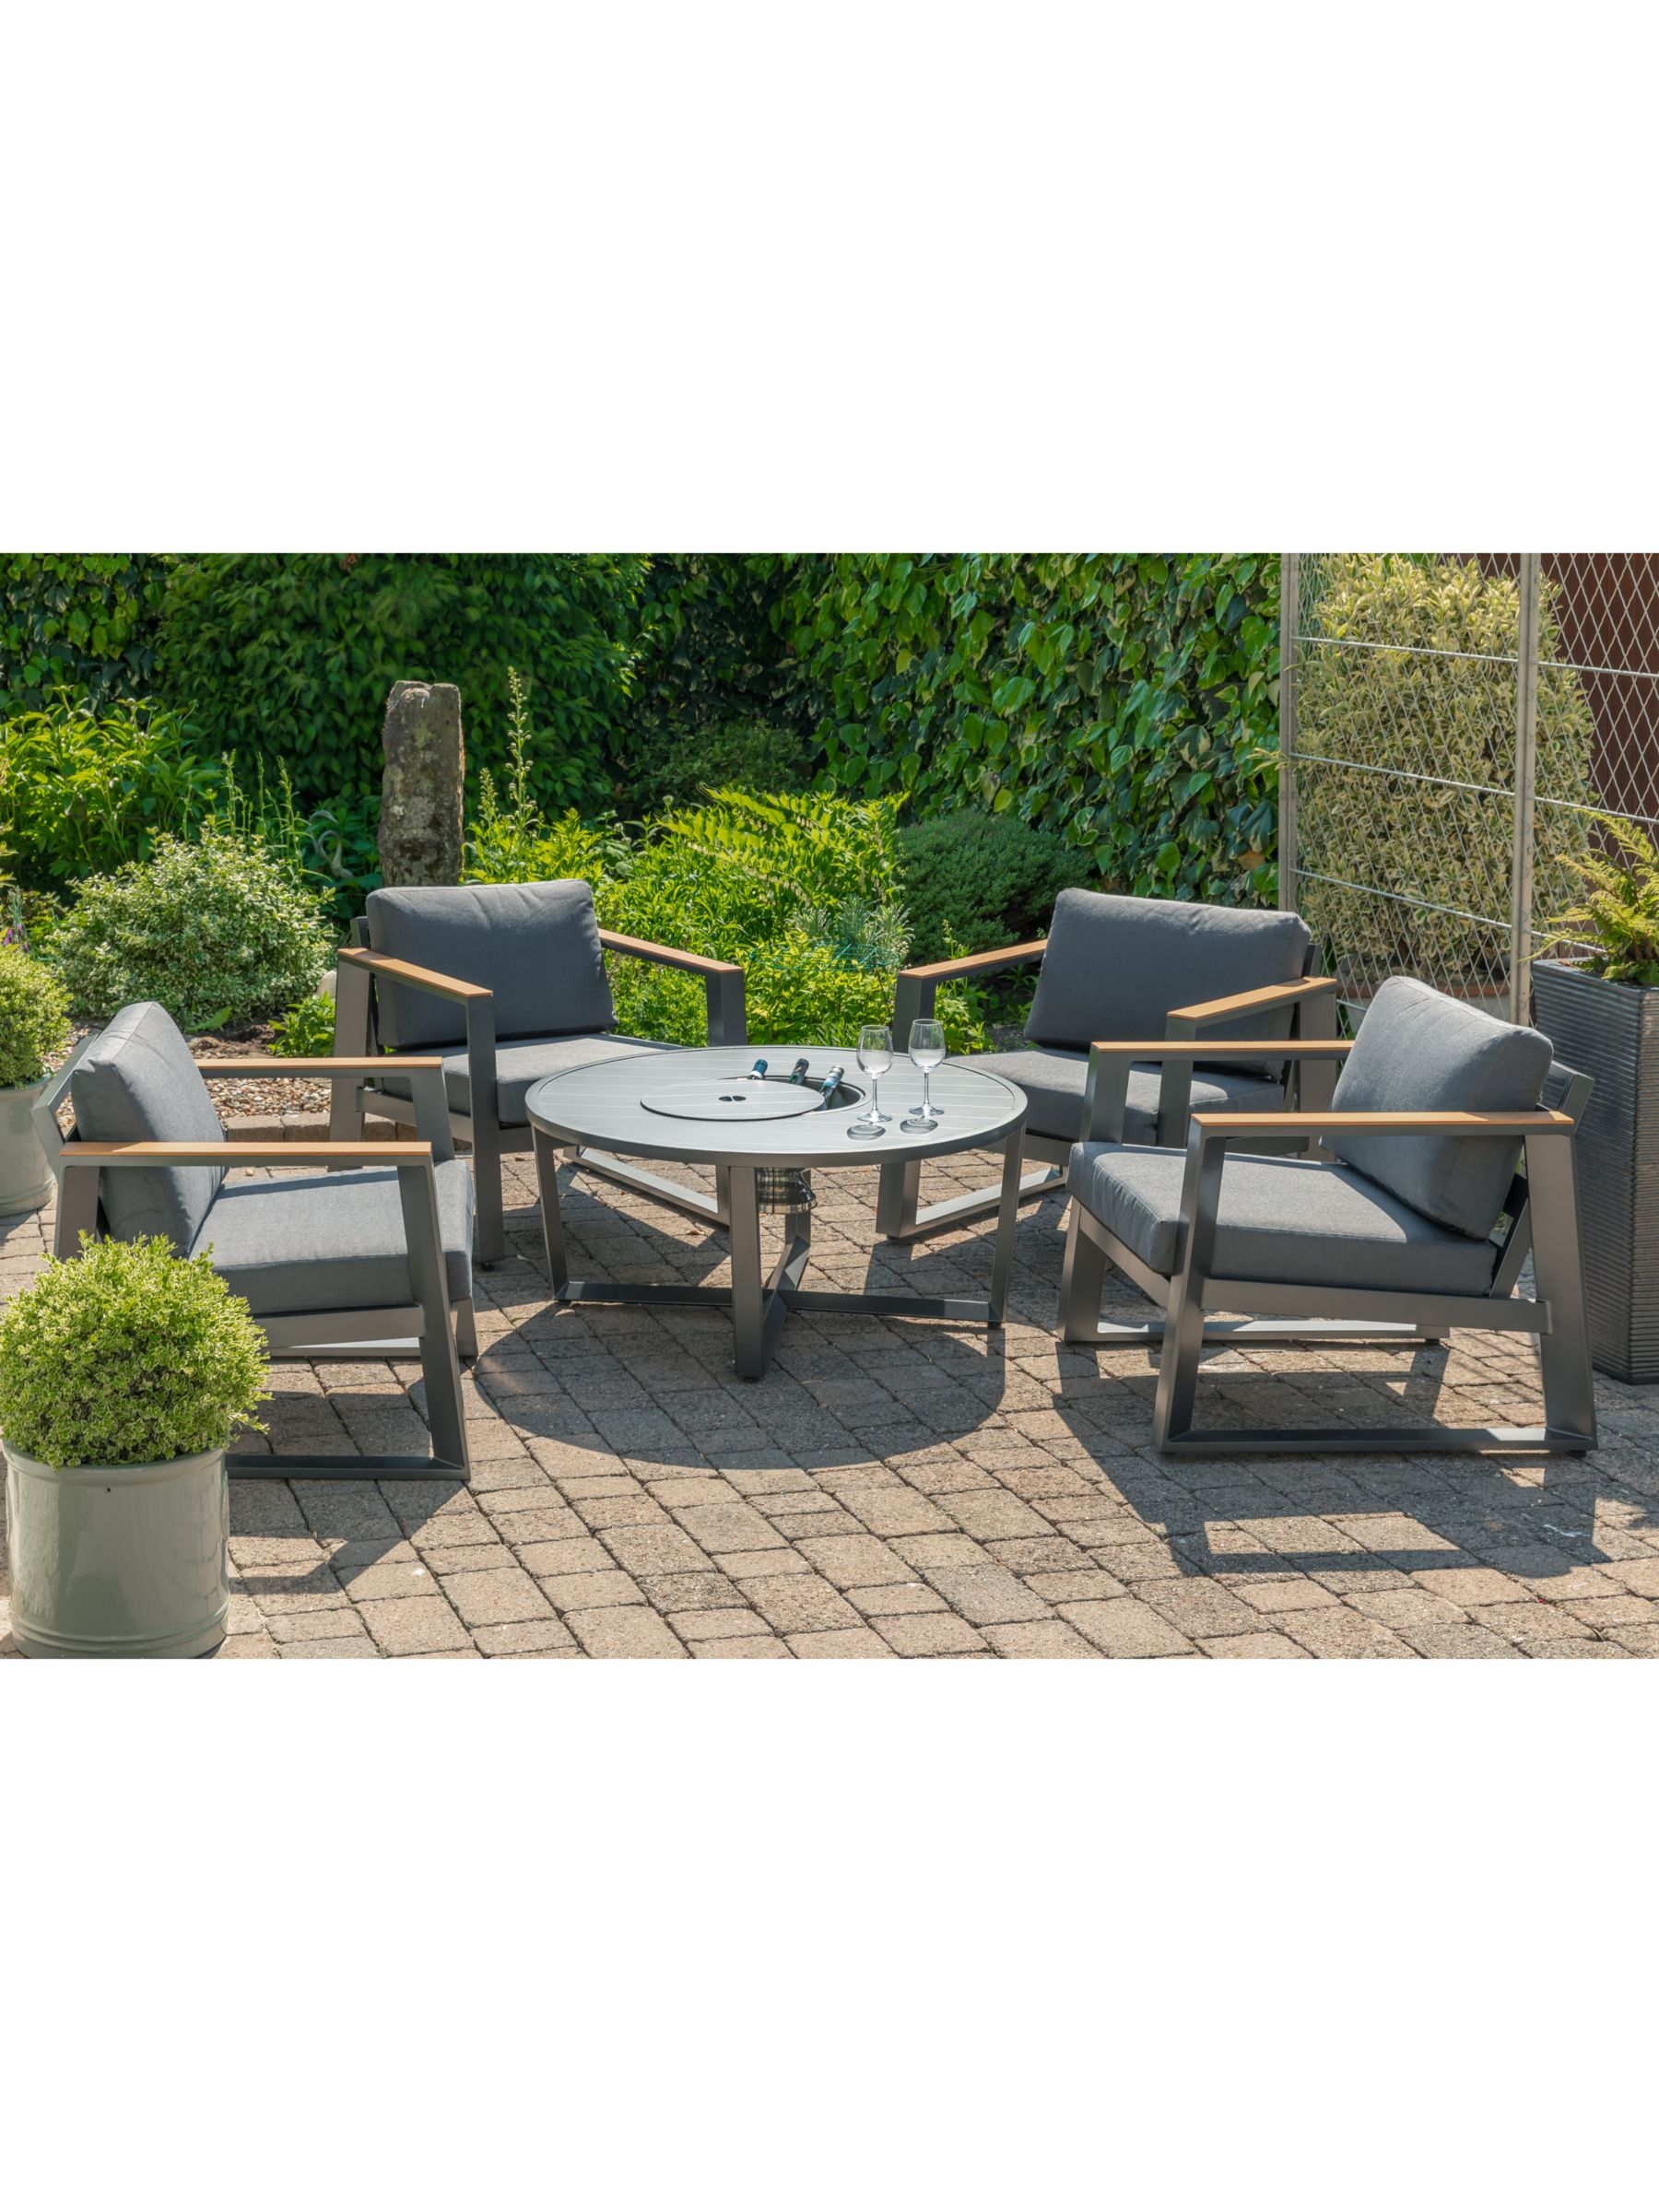 Lg Outdoor Roma 4 Seat Garden Table Chairs Lounging Set With Ice Bucket Anthracite Grey At John Lewis Partners